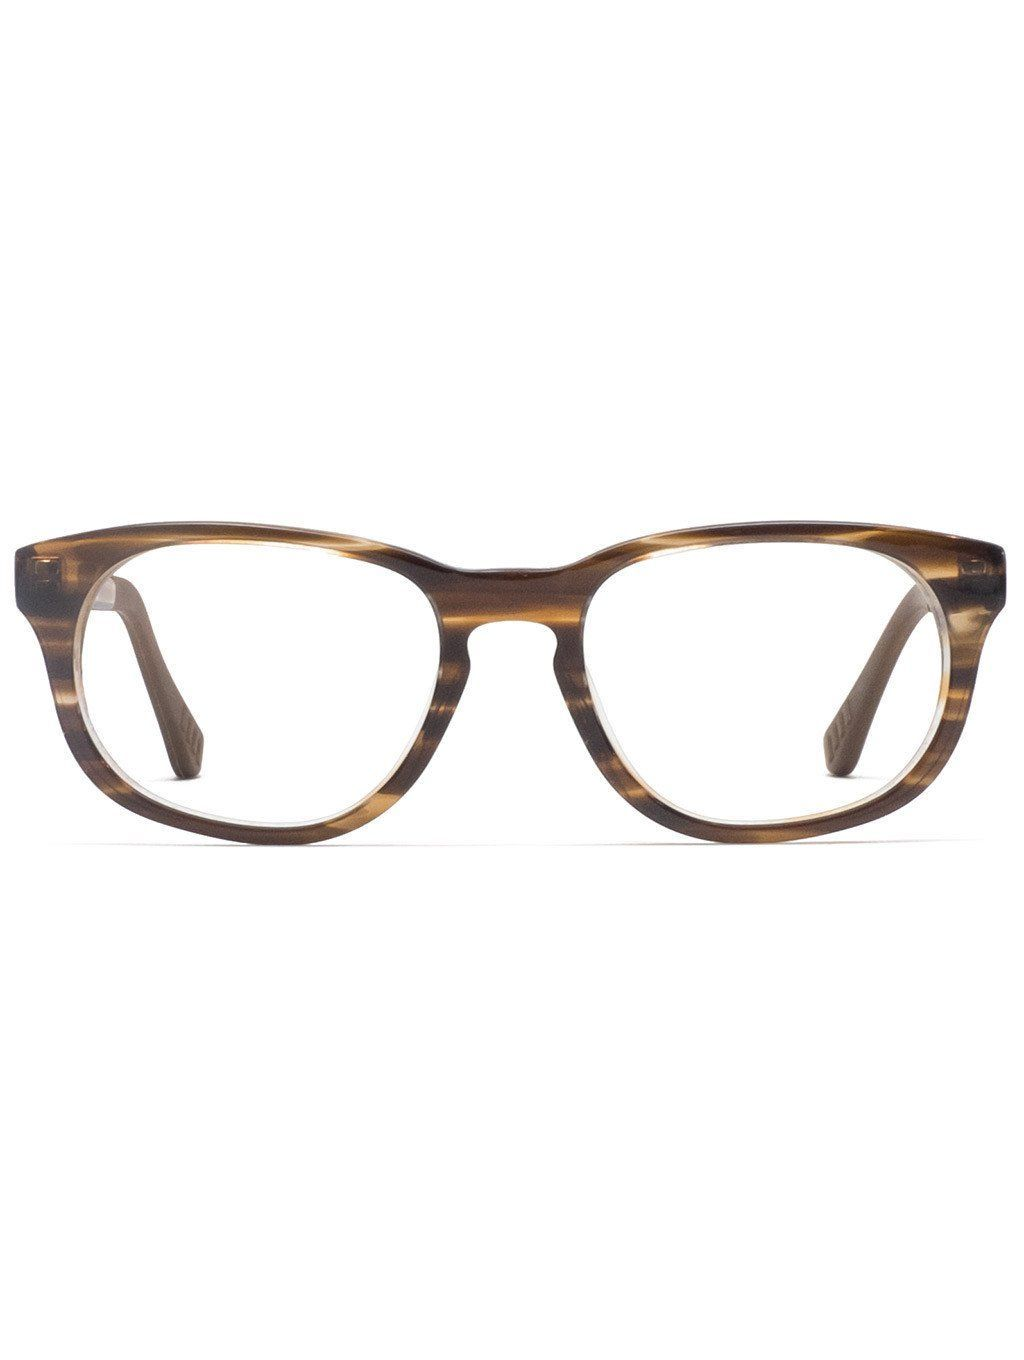 Kids Glasses // The Ruth Striped Maple   Kids glasses and Products